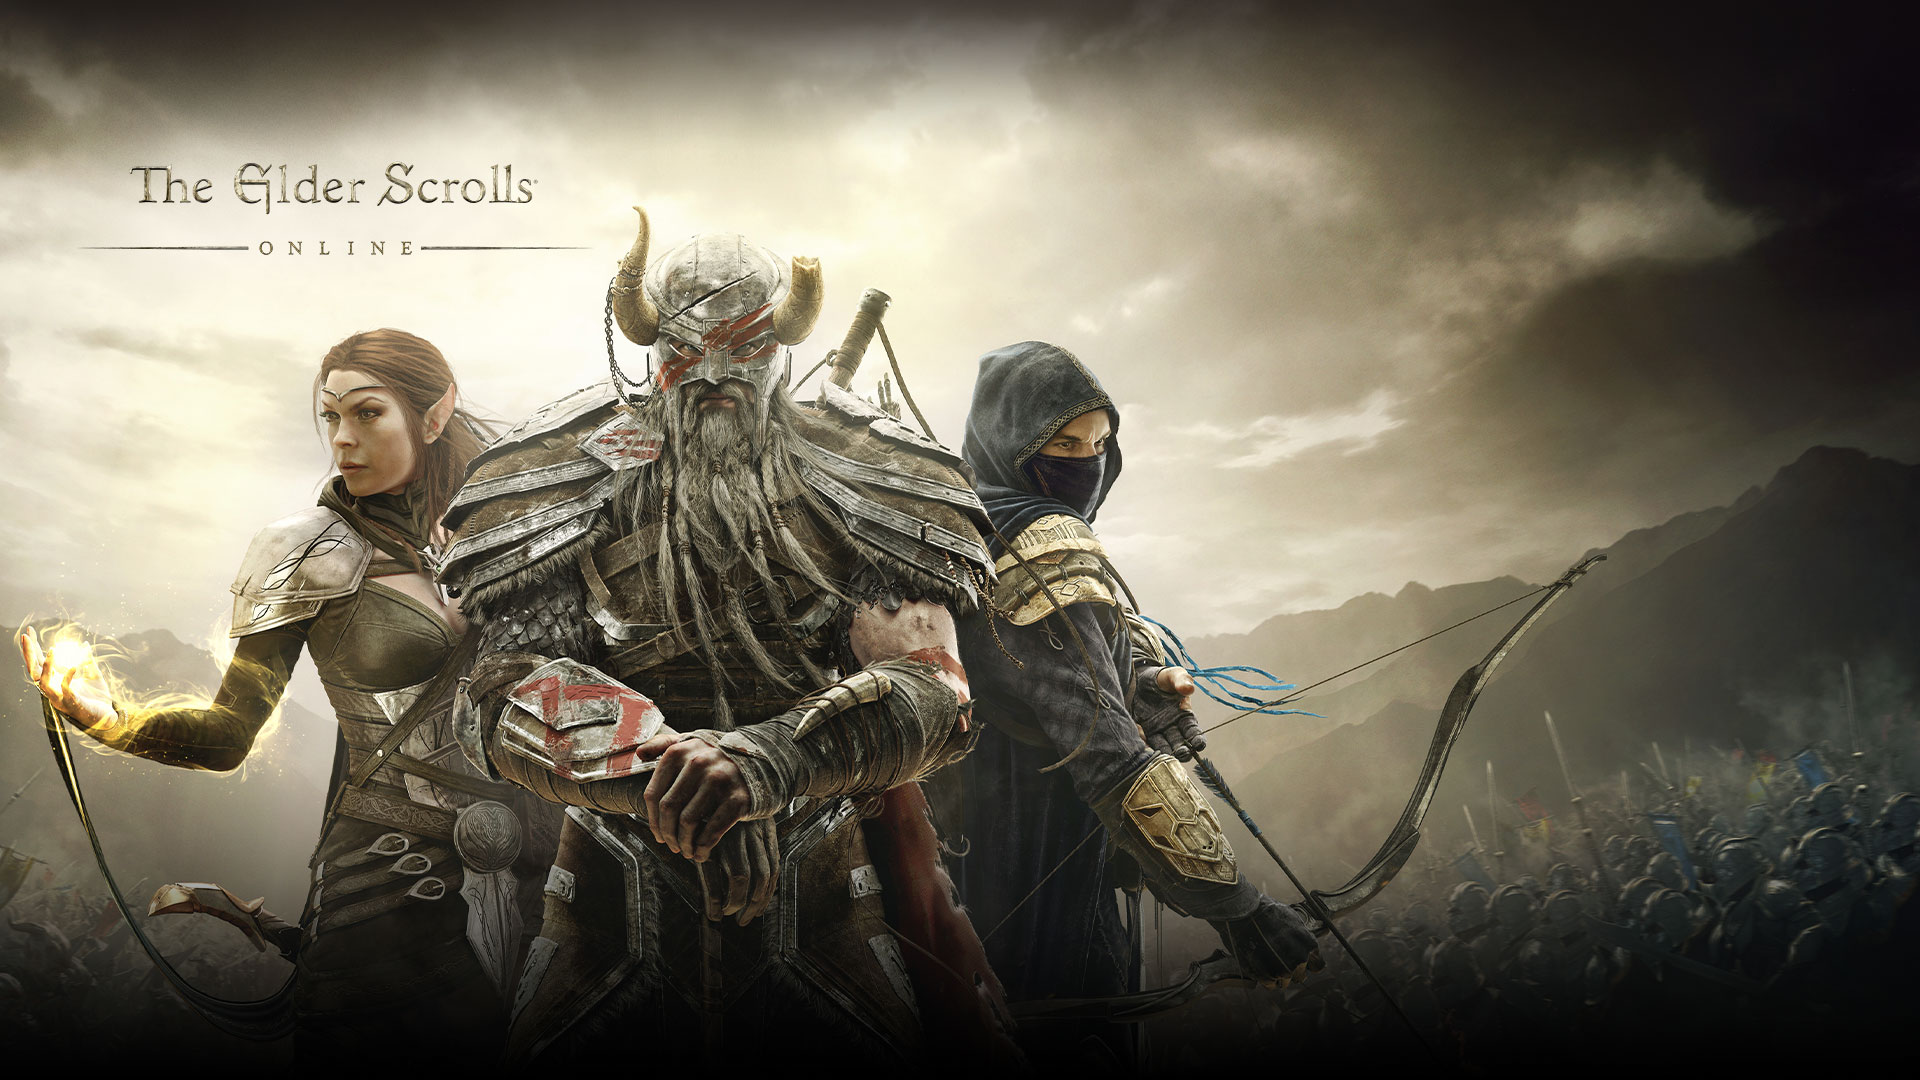 The Elder Scrolls online, three fantasy characters stand ready to fight